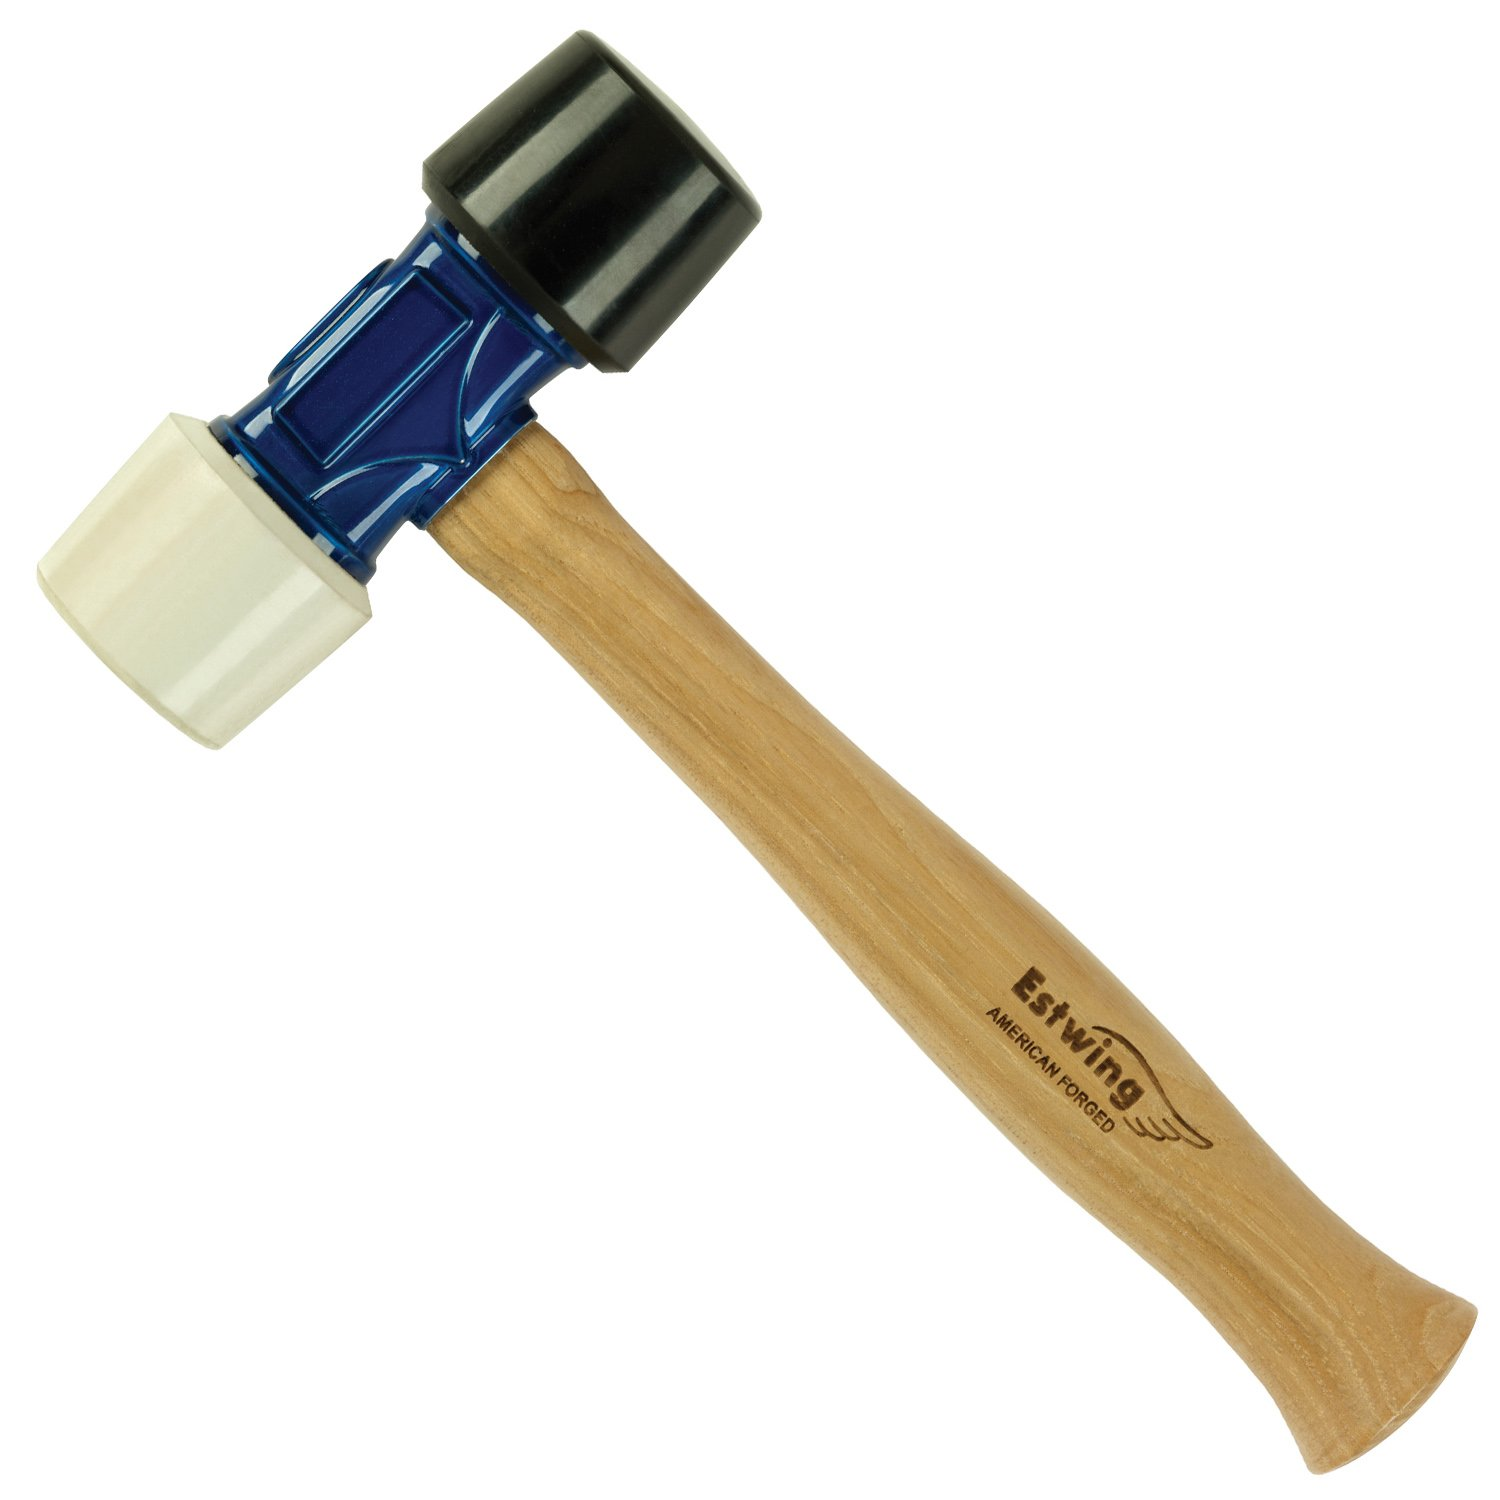 Estwing Rubber Mallet- 24 oz Double-Face Hammer with Soft/Hard Tips & Hickory Wood Handle - DFH24